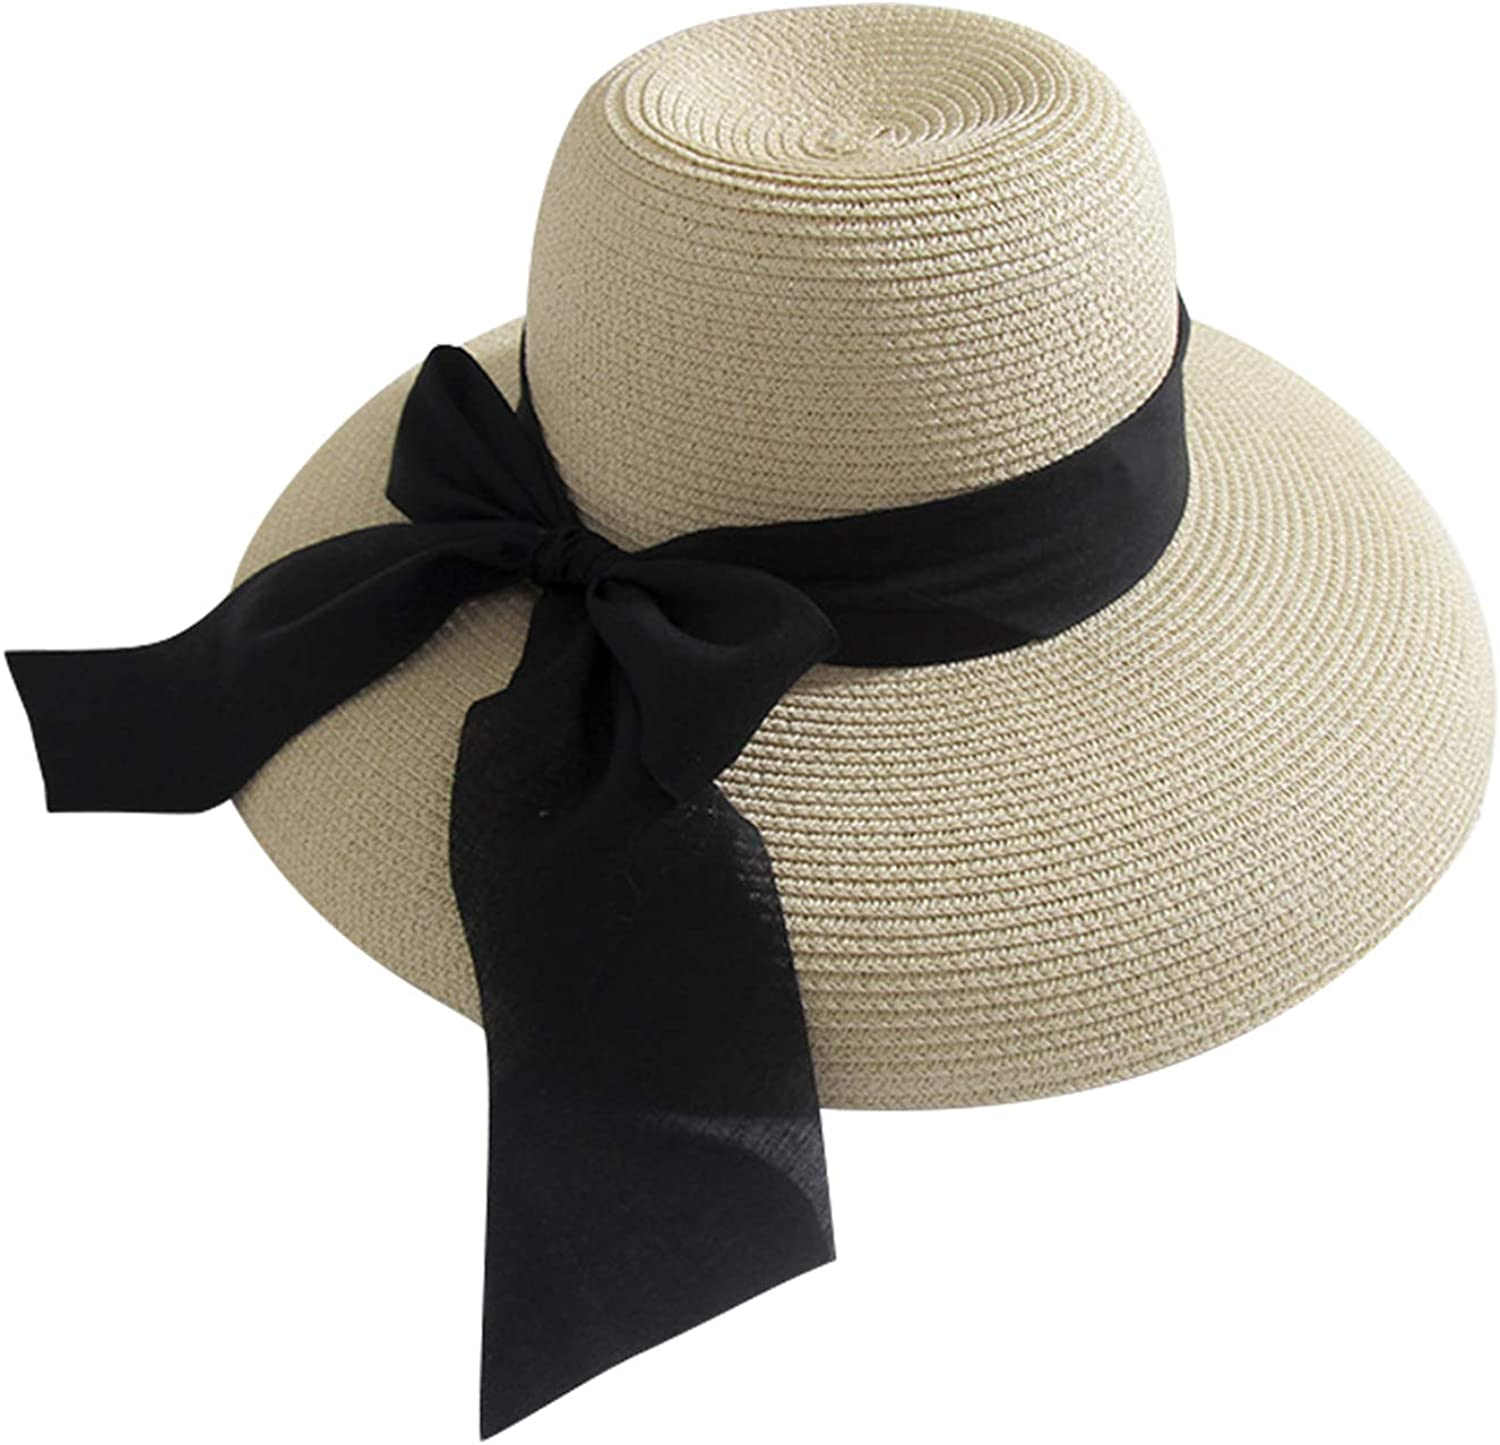 1Pcs Fashion Straw Beach Hat Colorful Derby Large Floppy Folderable For Women